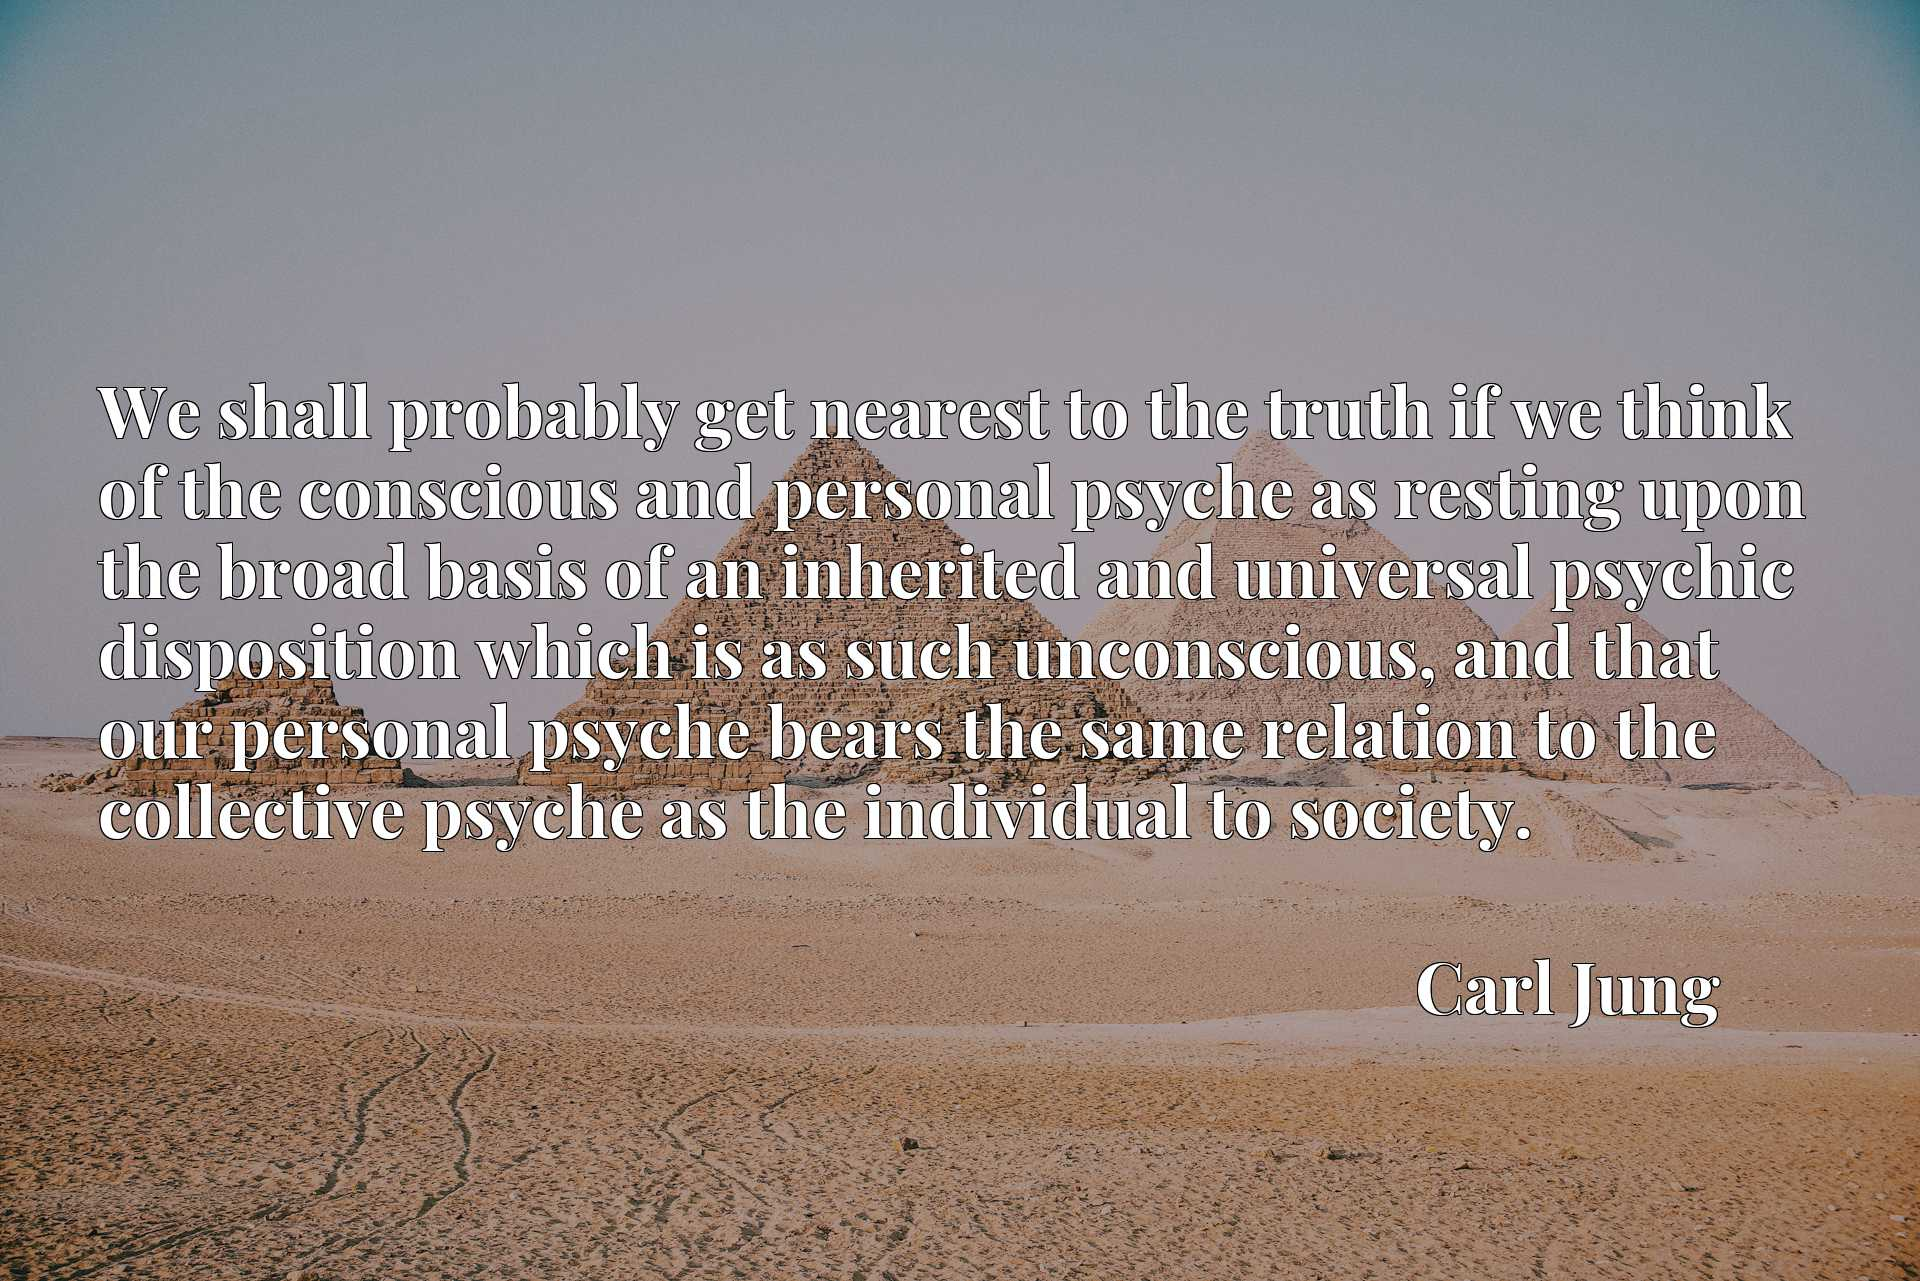 We shall probably get nearest to the truth if we think of the conscious and personal psyche as resting upon the broad basis of an inherited and universal psychic disposition which is as such unconscious, and that our personal psyche bears the same relation to the collective psyche as the individual to society.